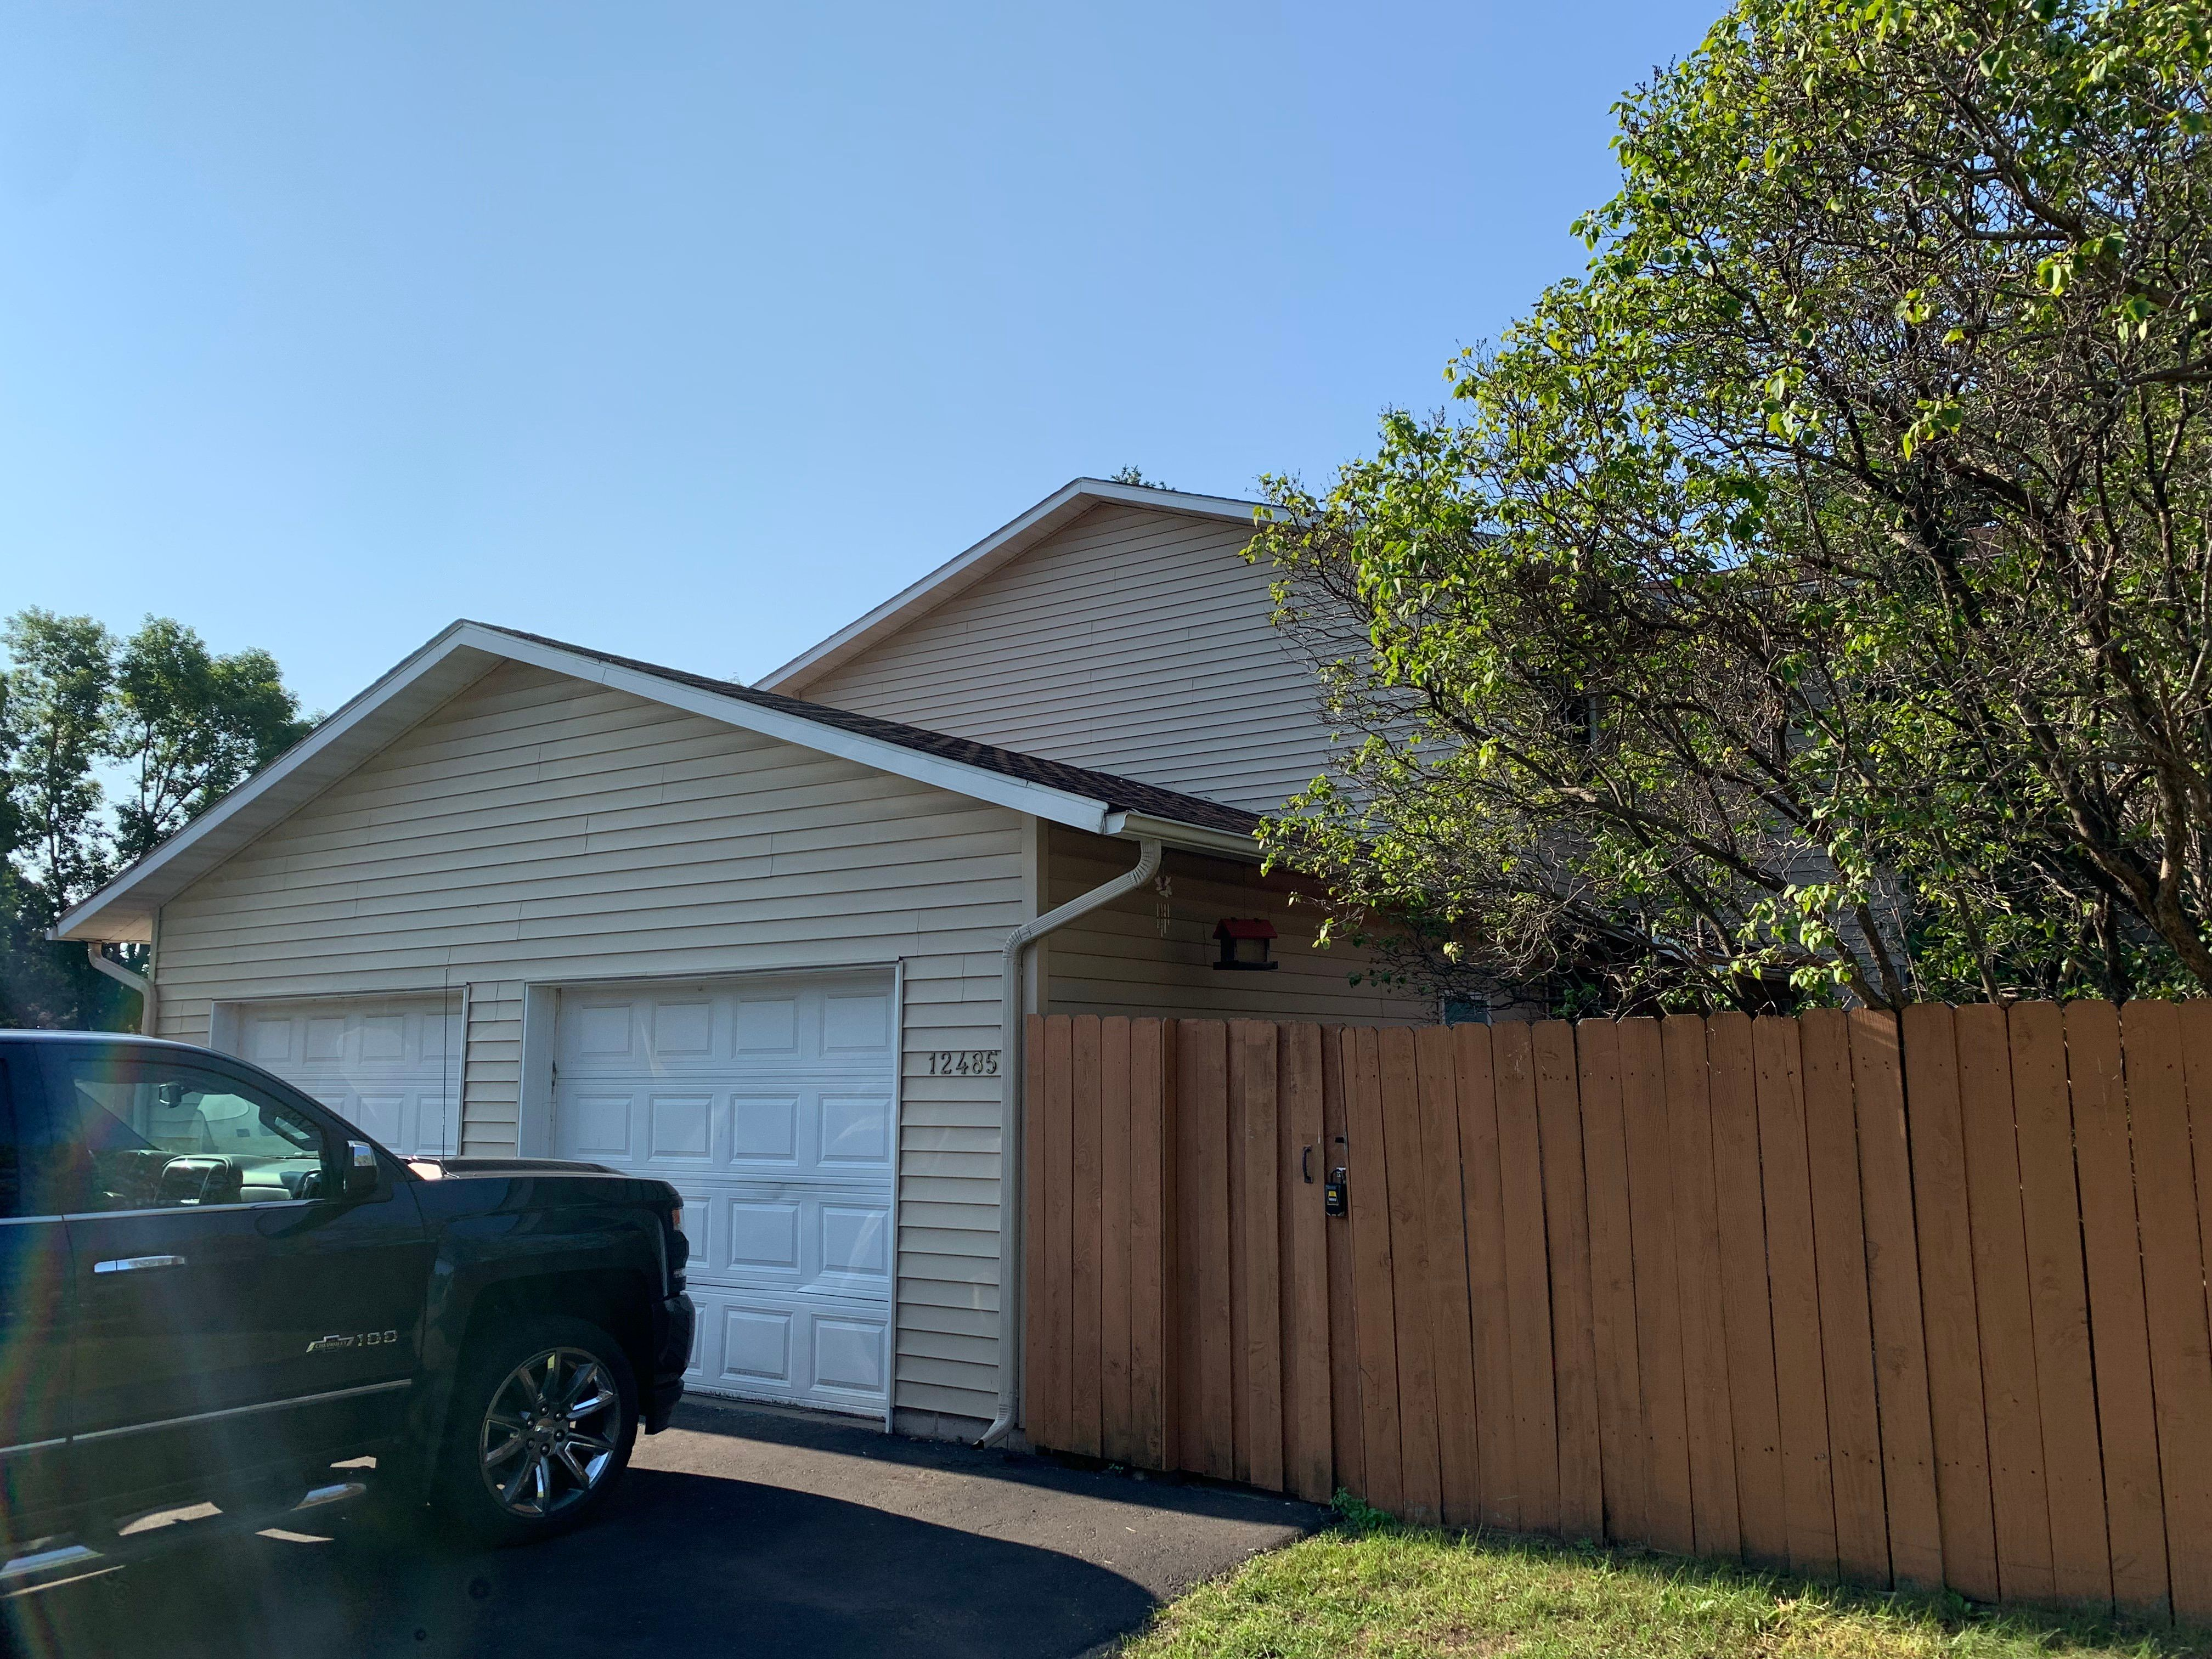 12485 Redwood St NW, Coon Rapids, MN